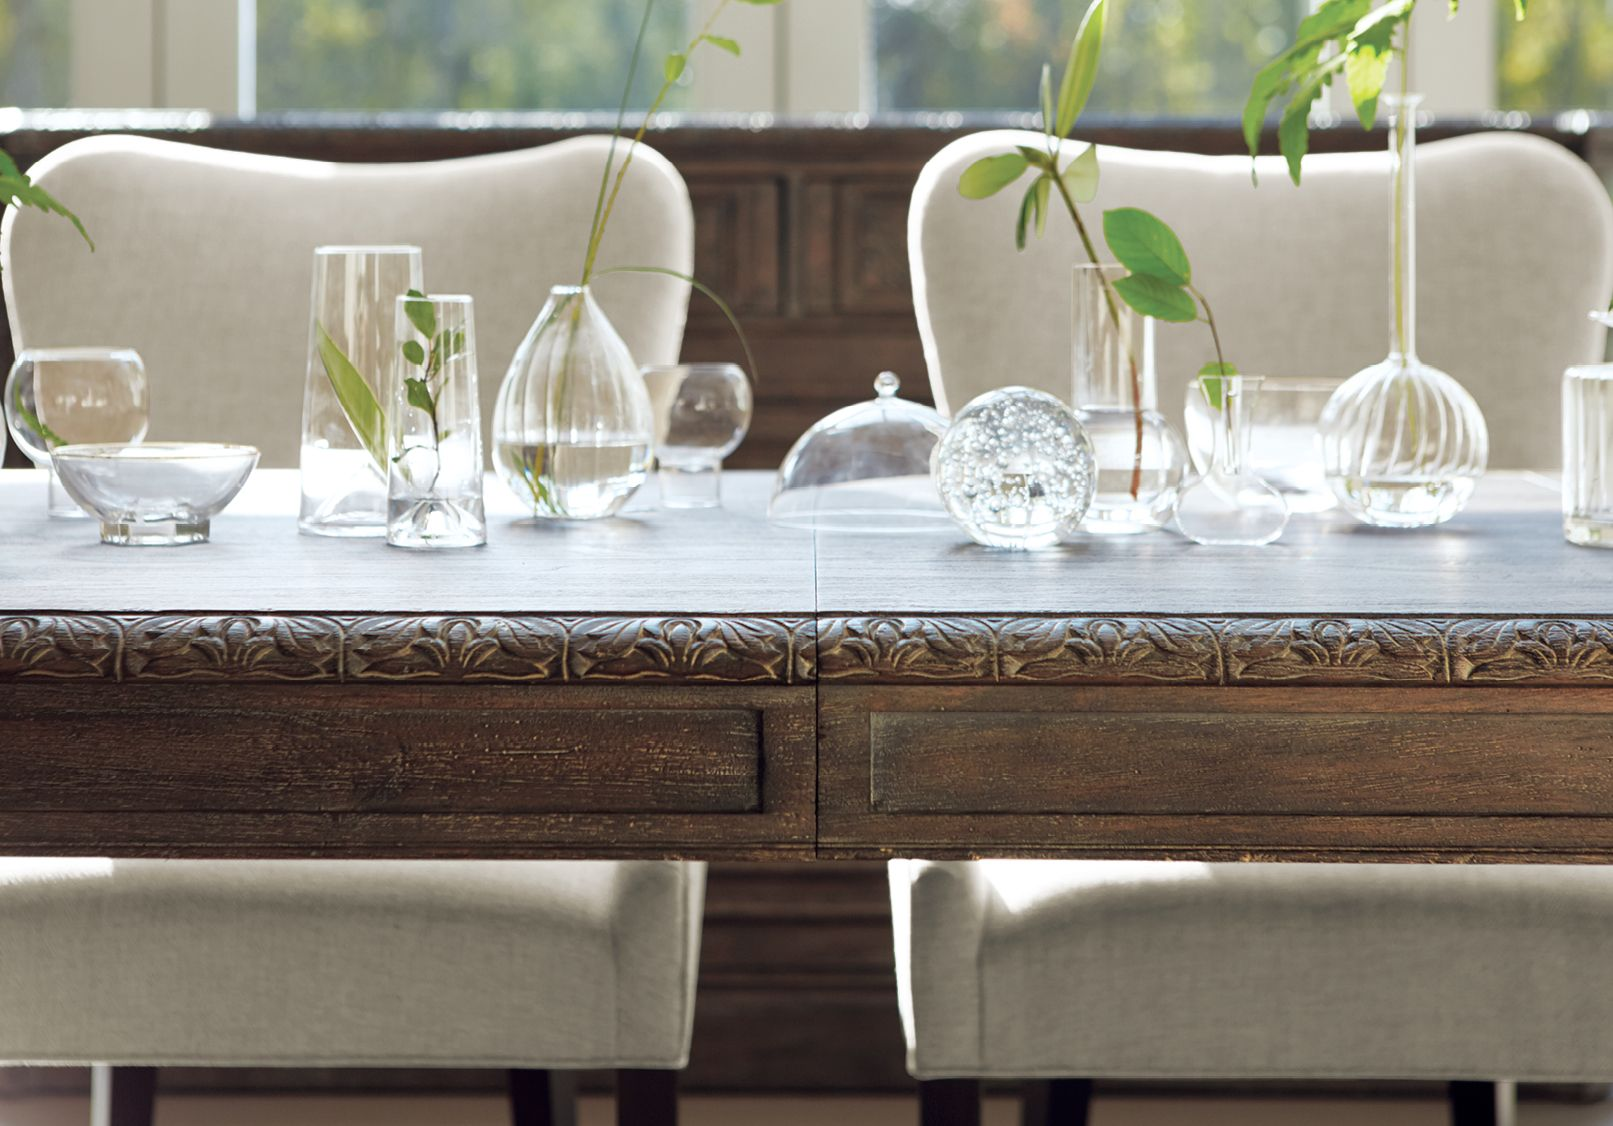 Taking inspiration from an antique table unearthed during our travels, the extendable Barnett Dining Table boasts artisanal craftsmanship and beautiful hand-carved detailing. Its design pays homage to the 19th-century industrial-era architecture found in Mechelen, Belgium. #DiningRoom #HomeDecor #Wood #Furniture #Handcrafted